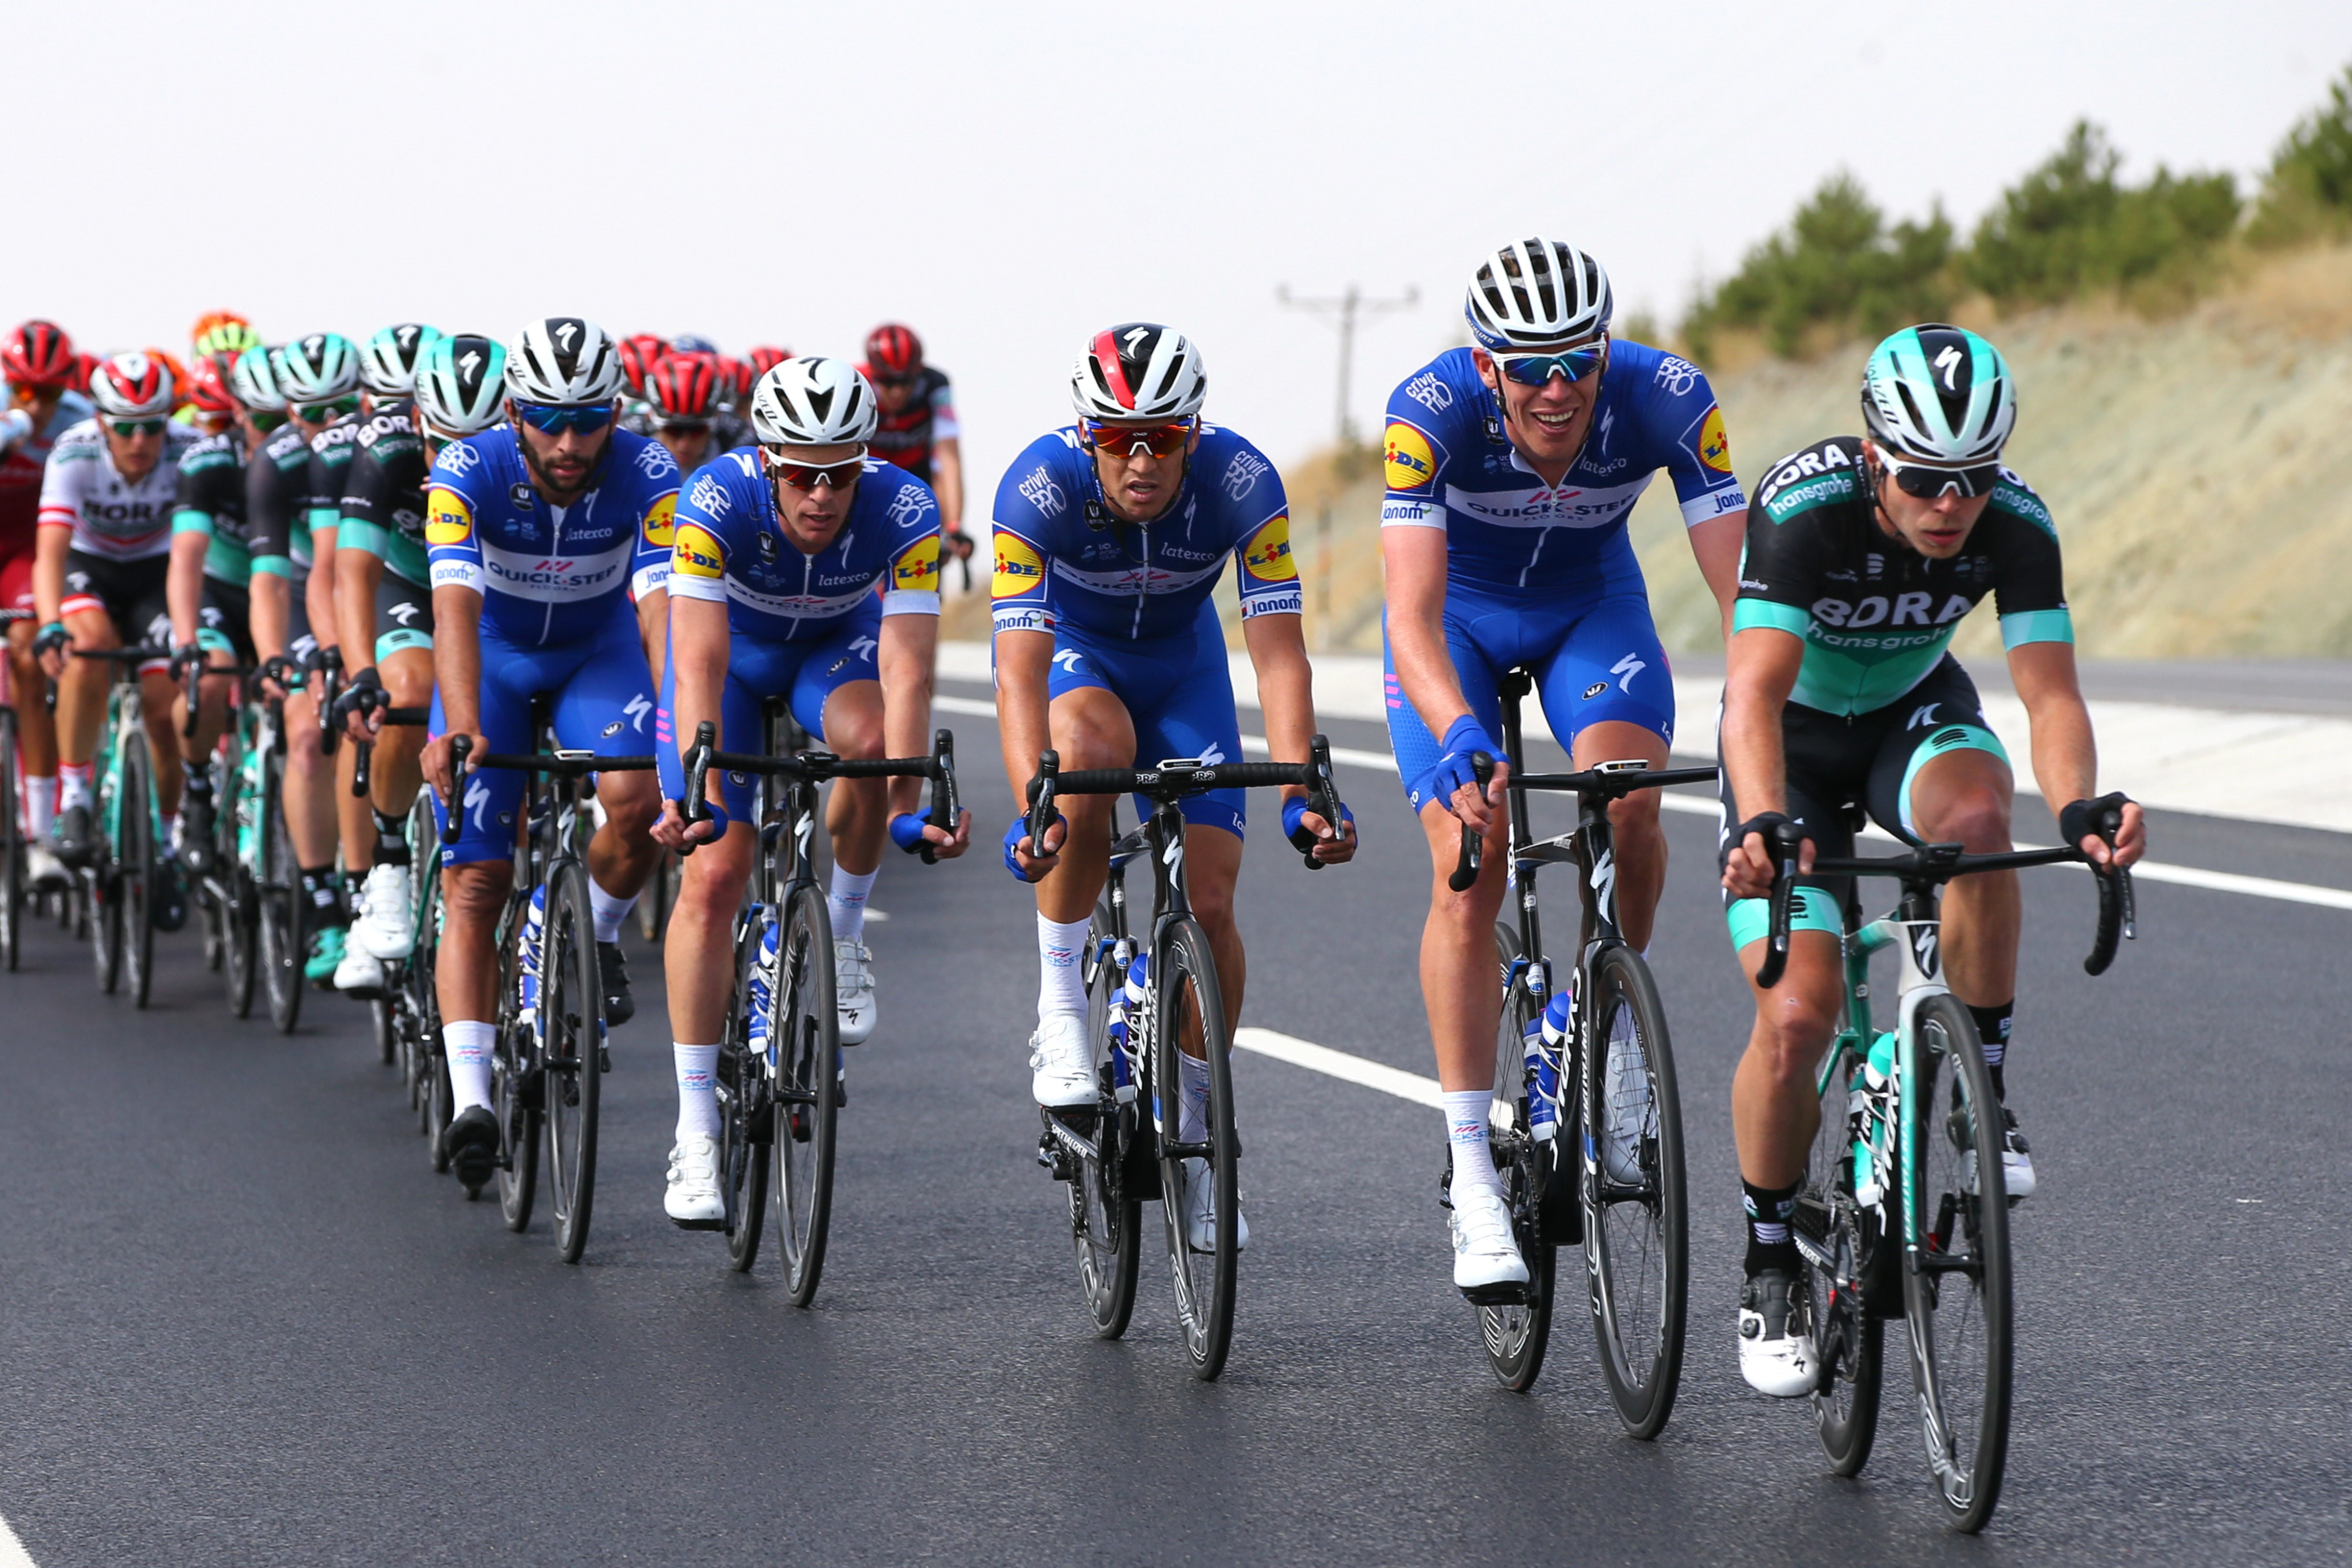 Juraj Sagan of Slovakia and Team Bora-Hansgrohe / Tim Declercq of Belgium and Team Quick Step Floors / Zdenek Stybar of Czech Republic and Team Quick Step Floors / Iljo Keisse of Belgium and Team Quick Step Floors / Fernando Gaviria of Colombia and Team Q